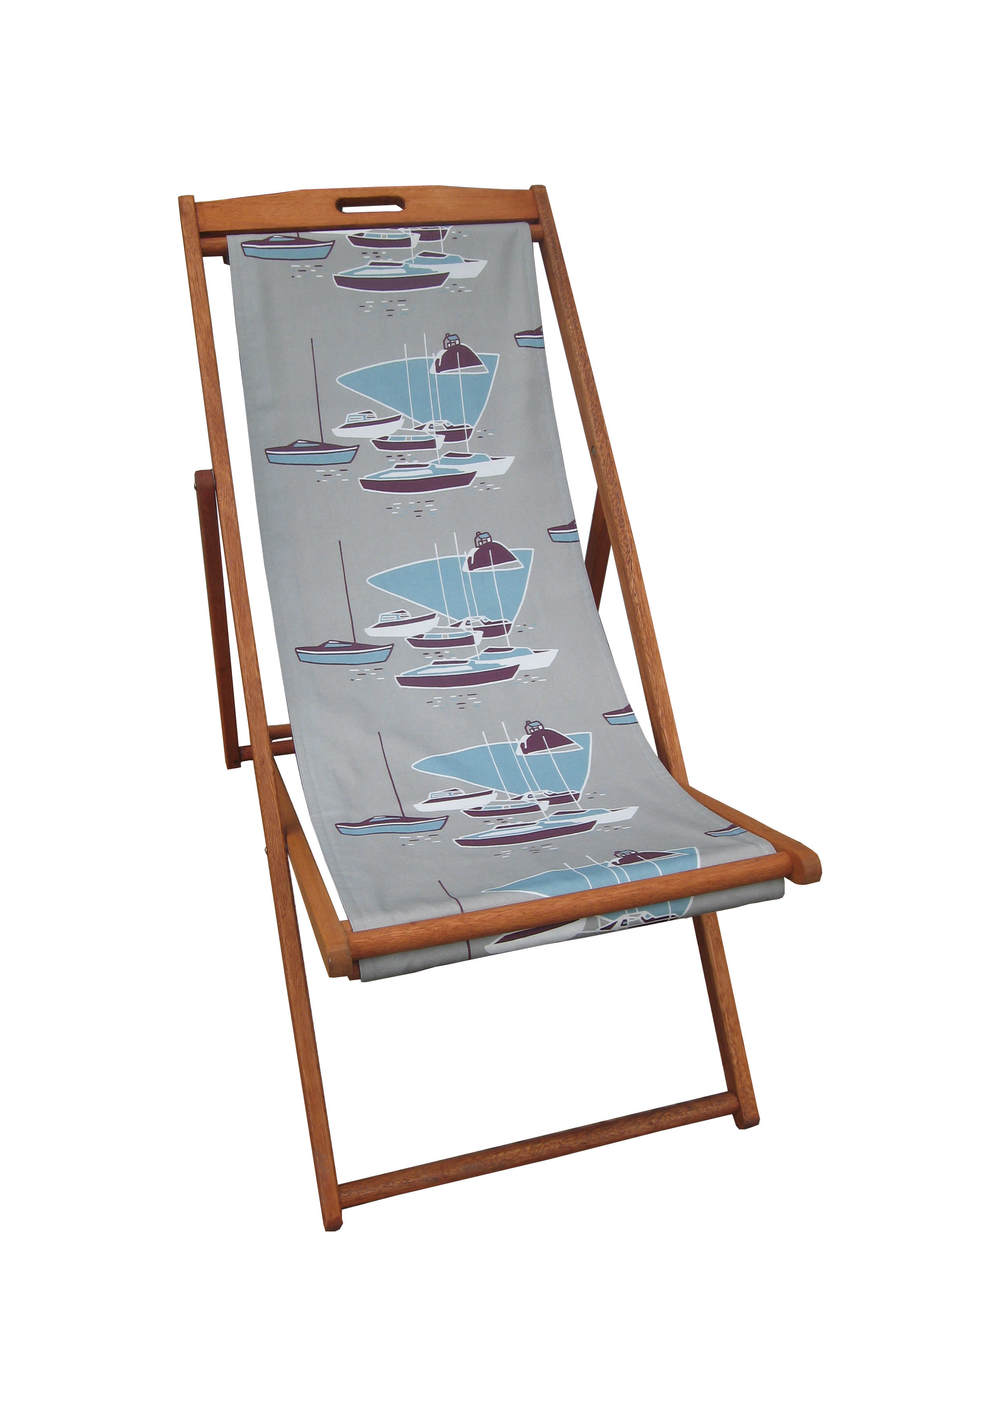 deckchair in boats Purple.jpg